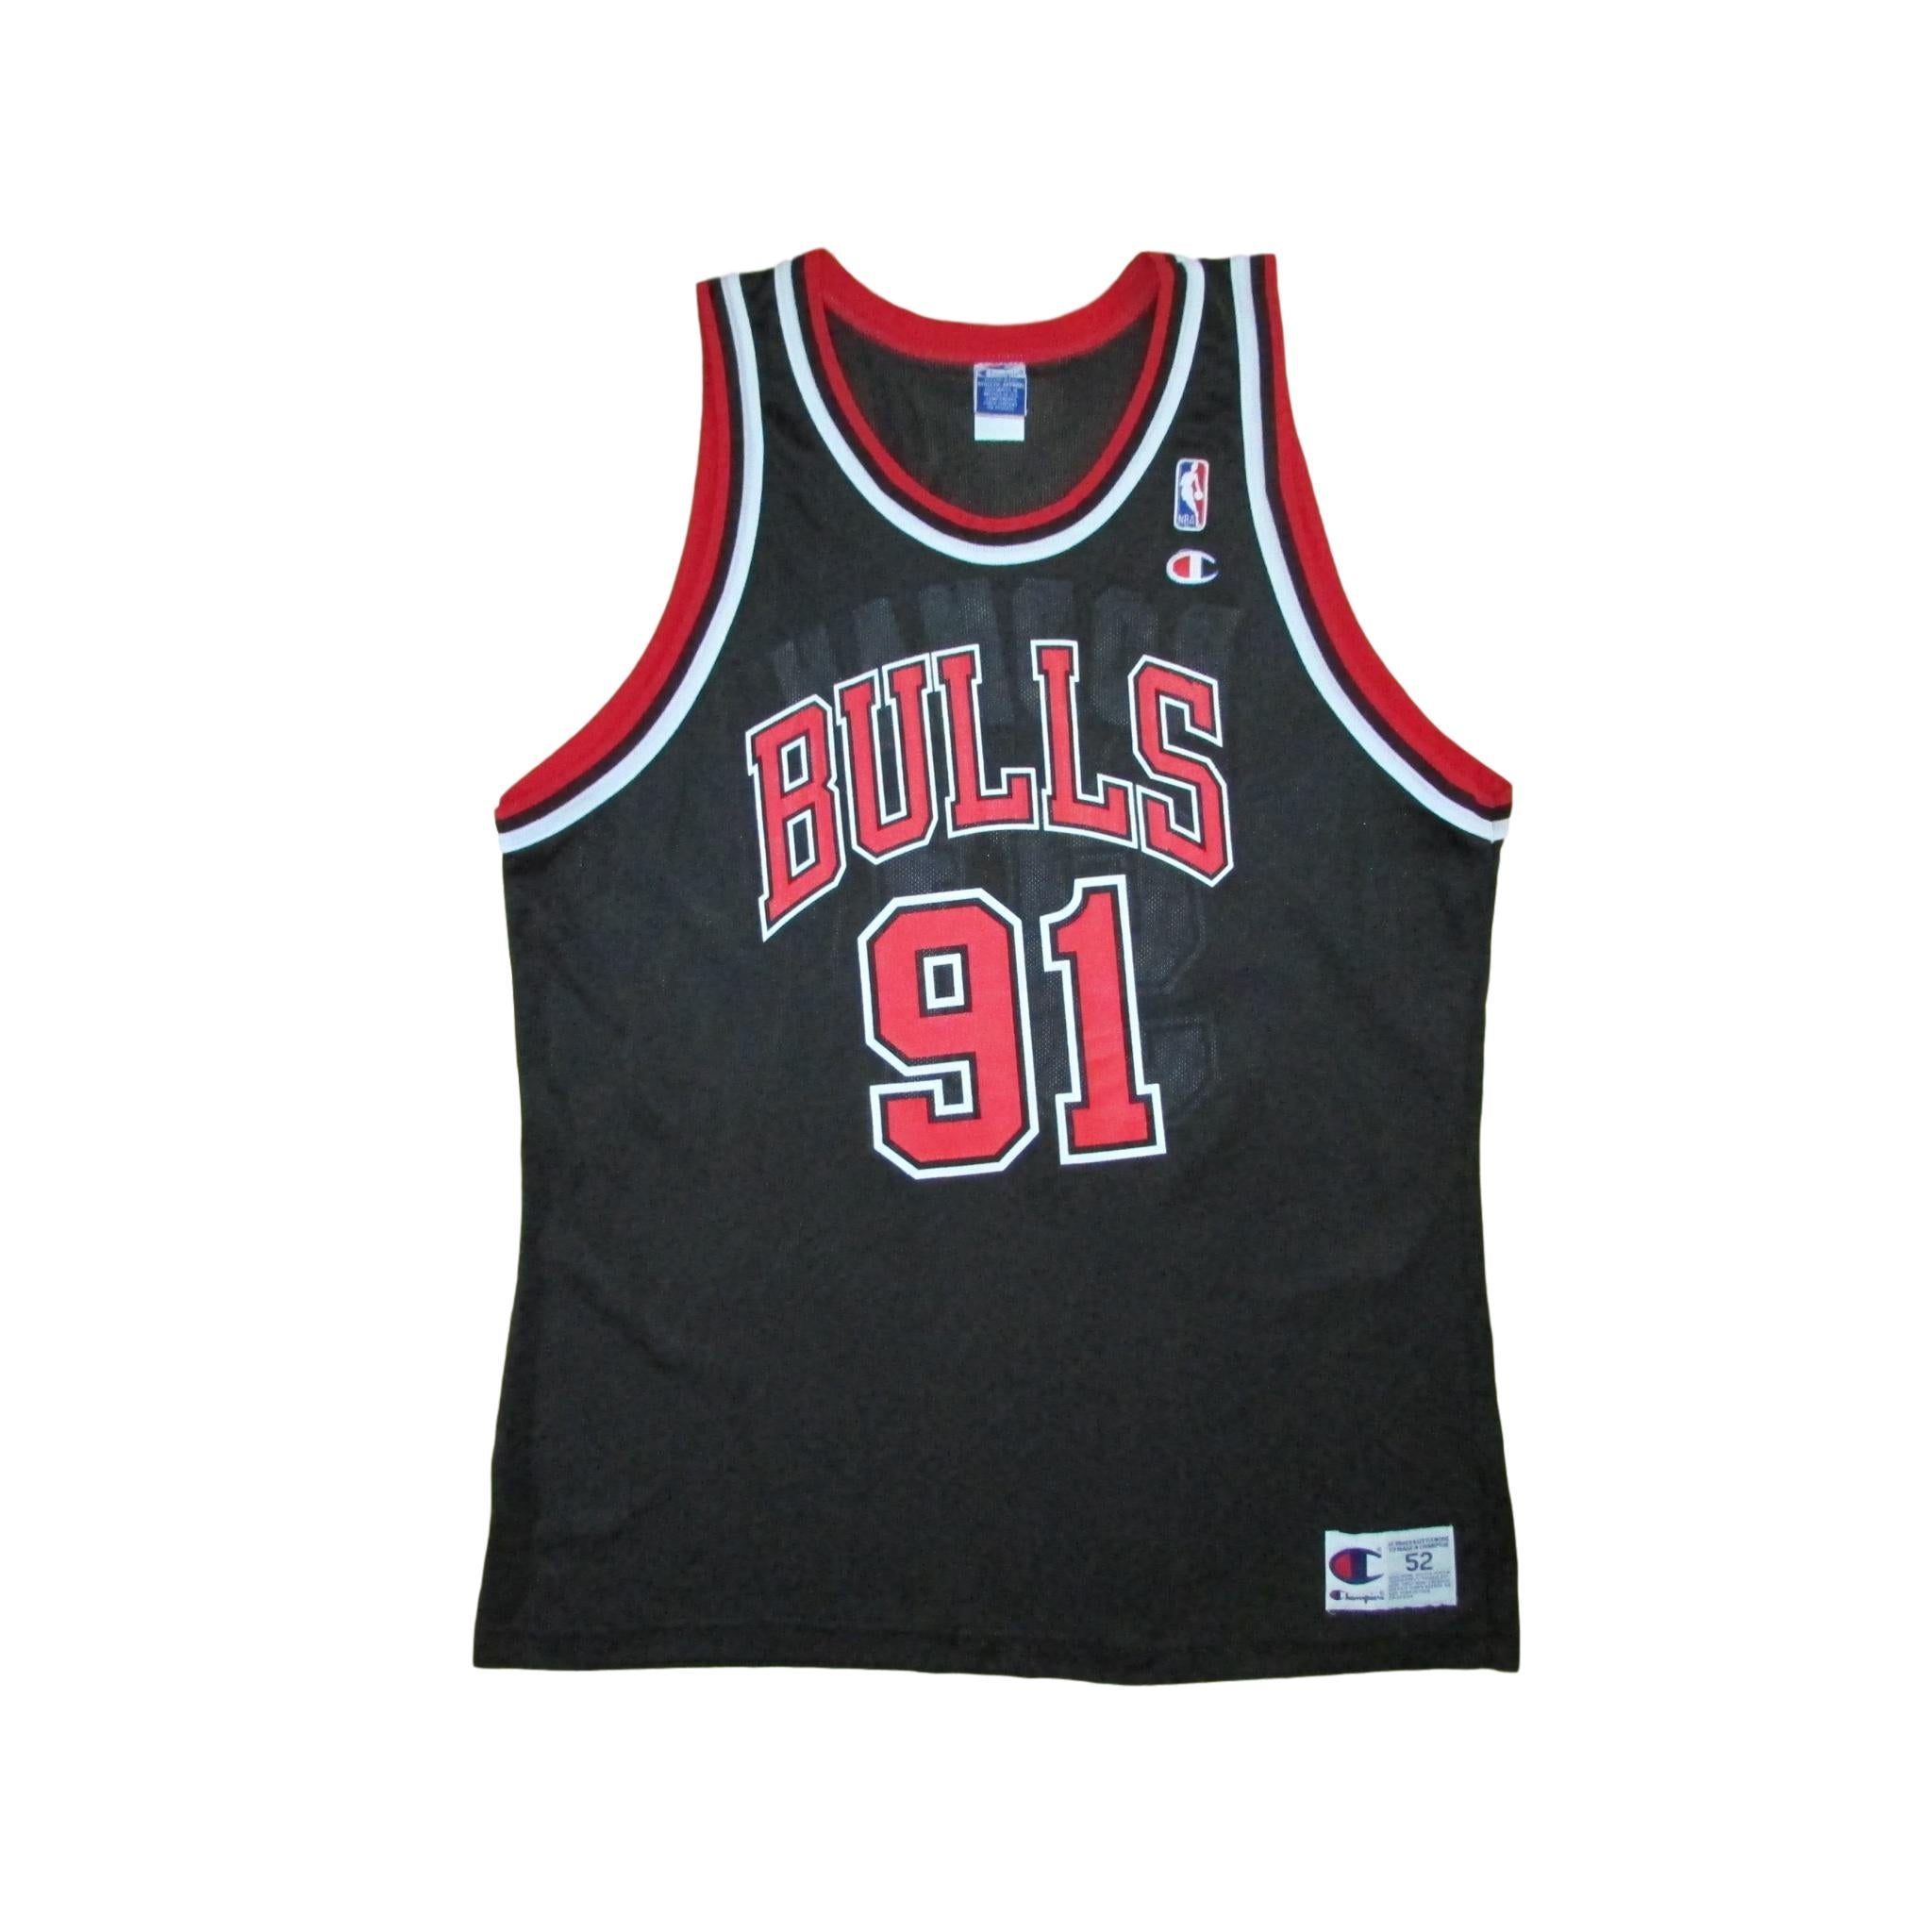 Chicago Bulls Dennis Rodman Basketball Champion Jersey Sz 52